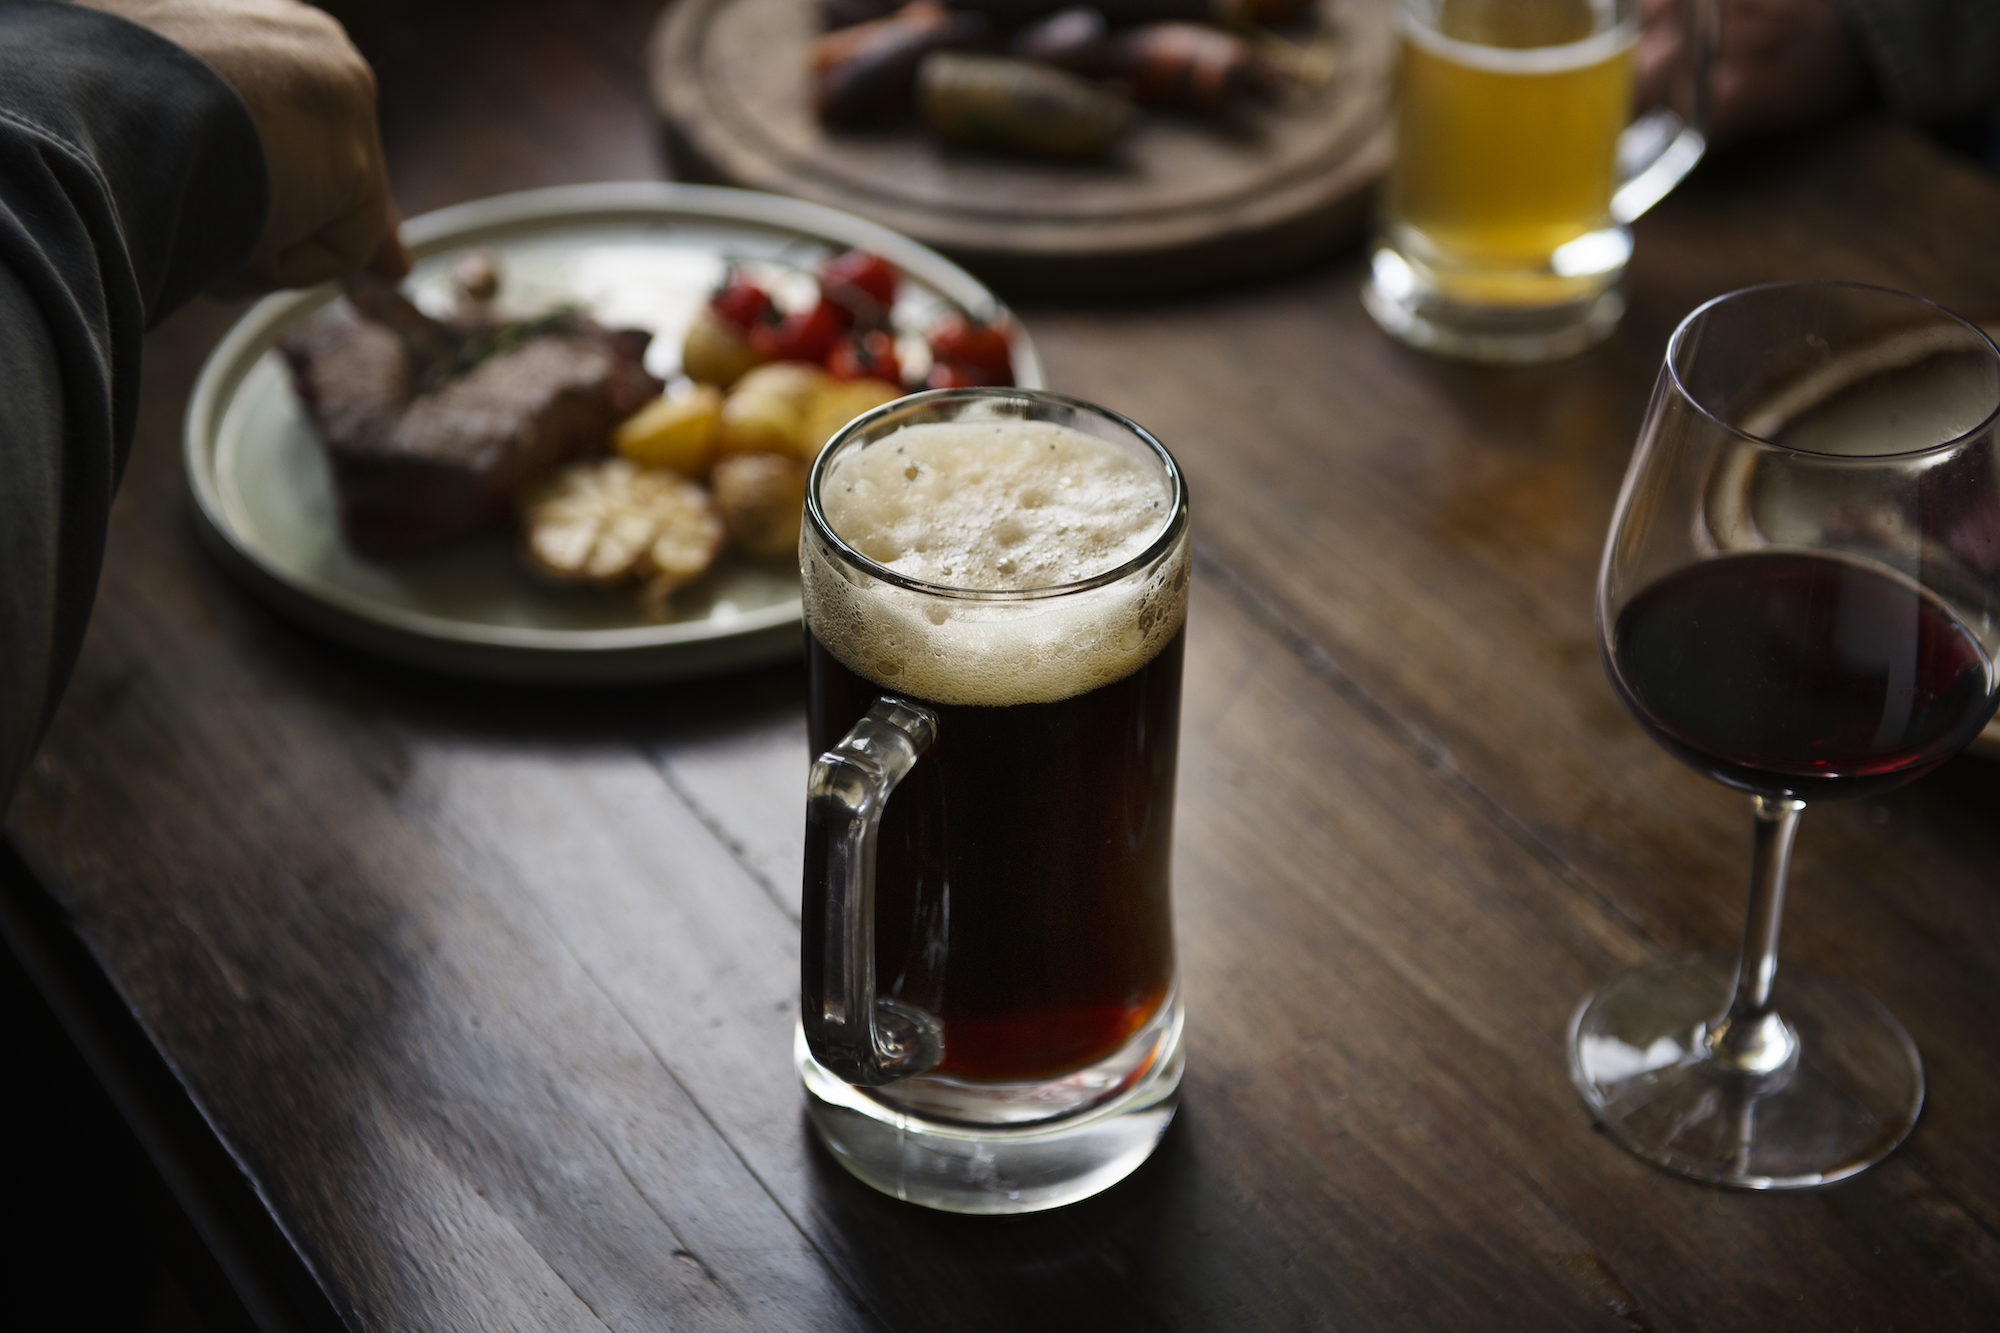 London's pubs are a key part of the city's culture. Pubs are great for beers, wine and Sunday roast dinners.